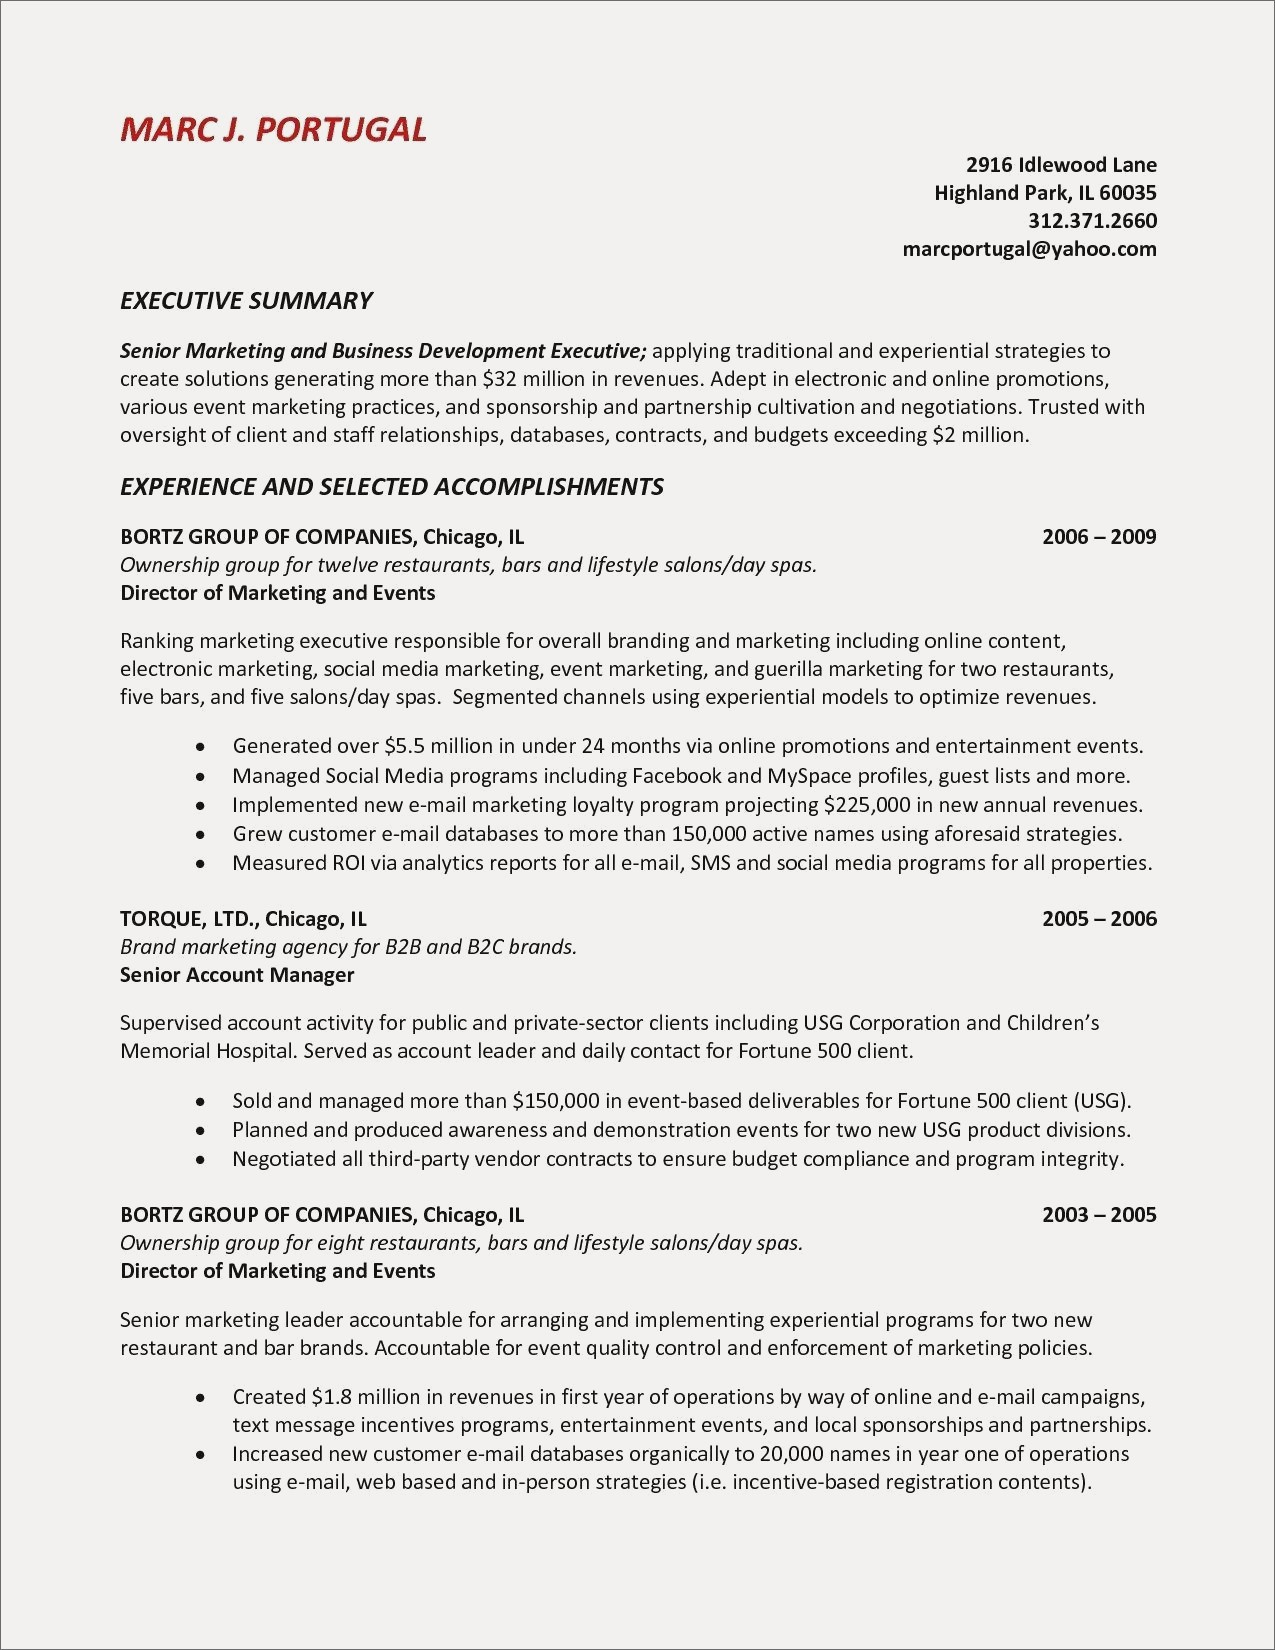 Executive Summary for Resume - Executive Summary Resume New Summary A Resume New Fresh Examples